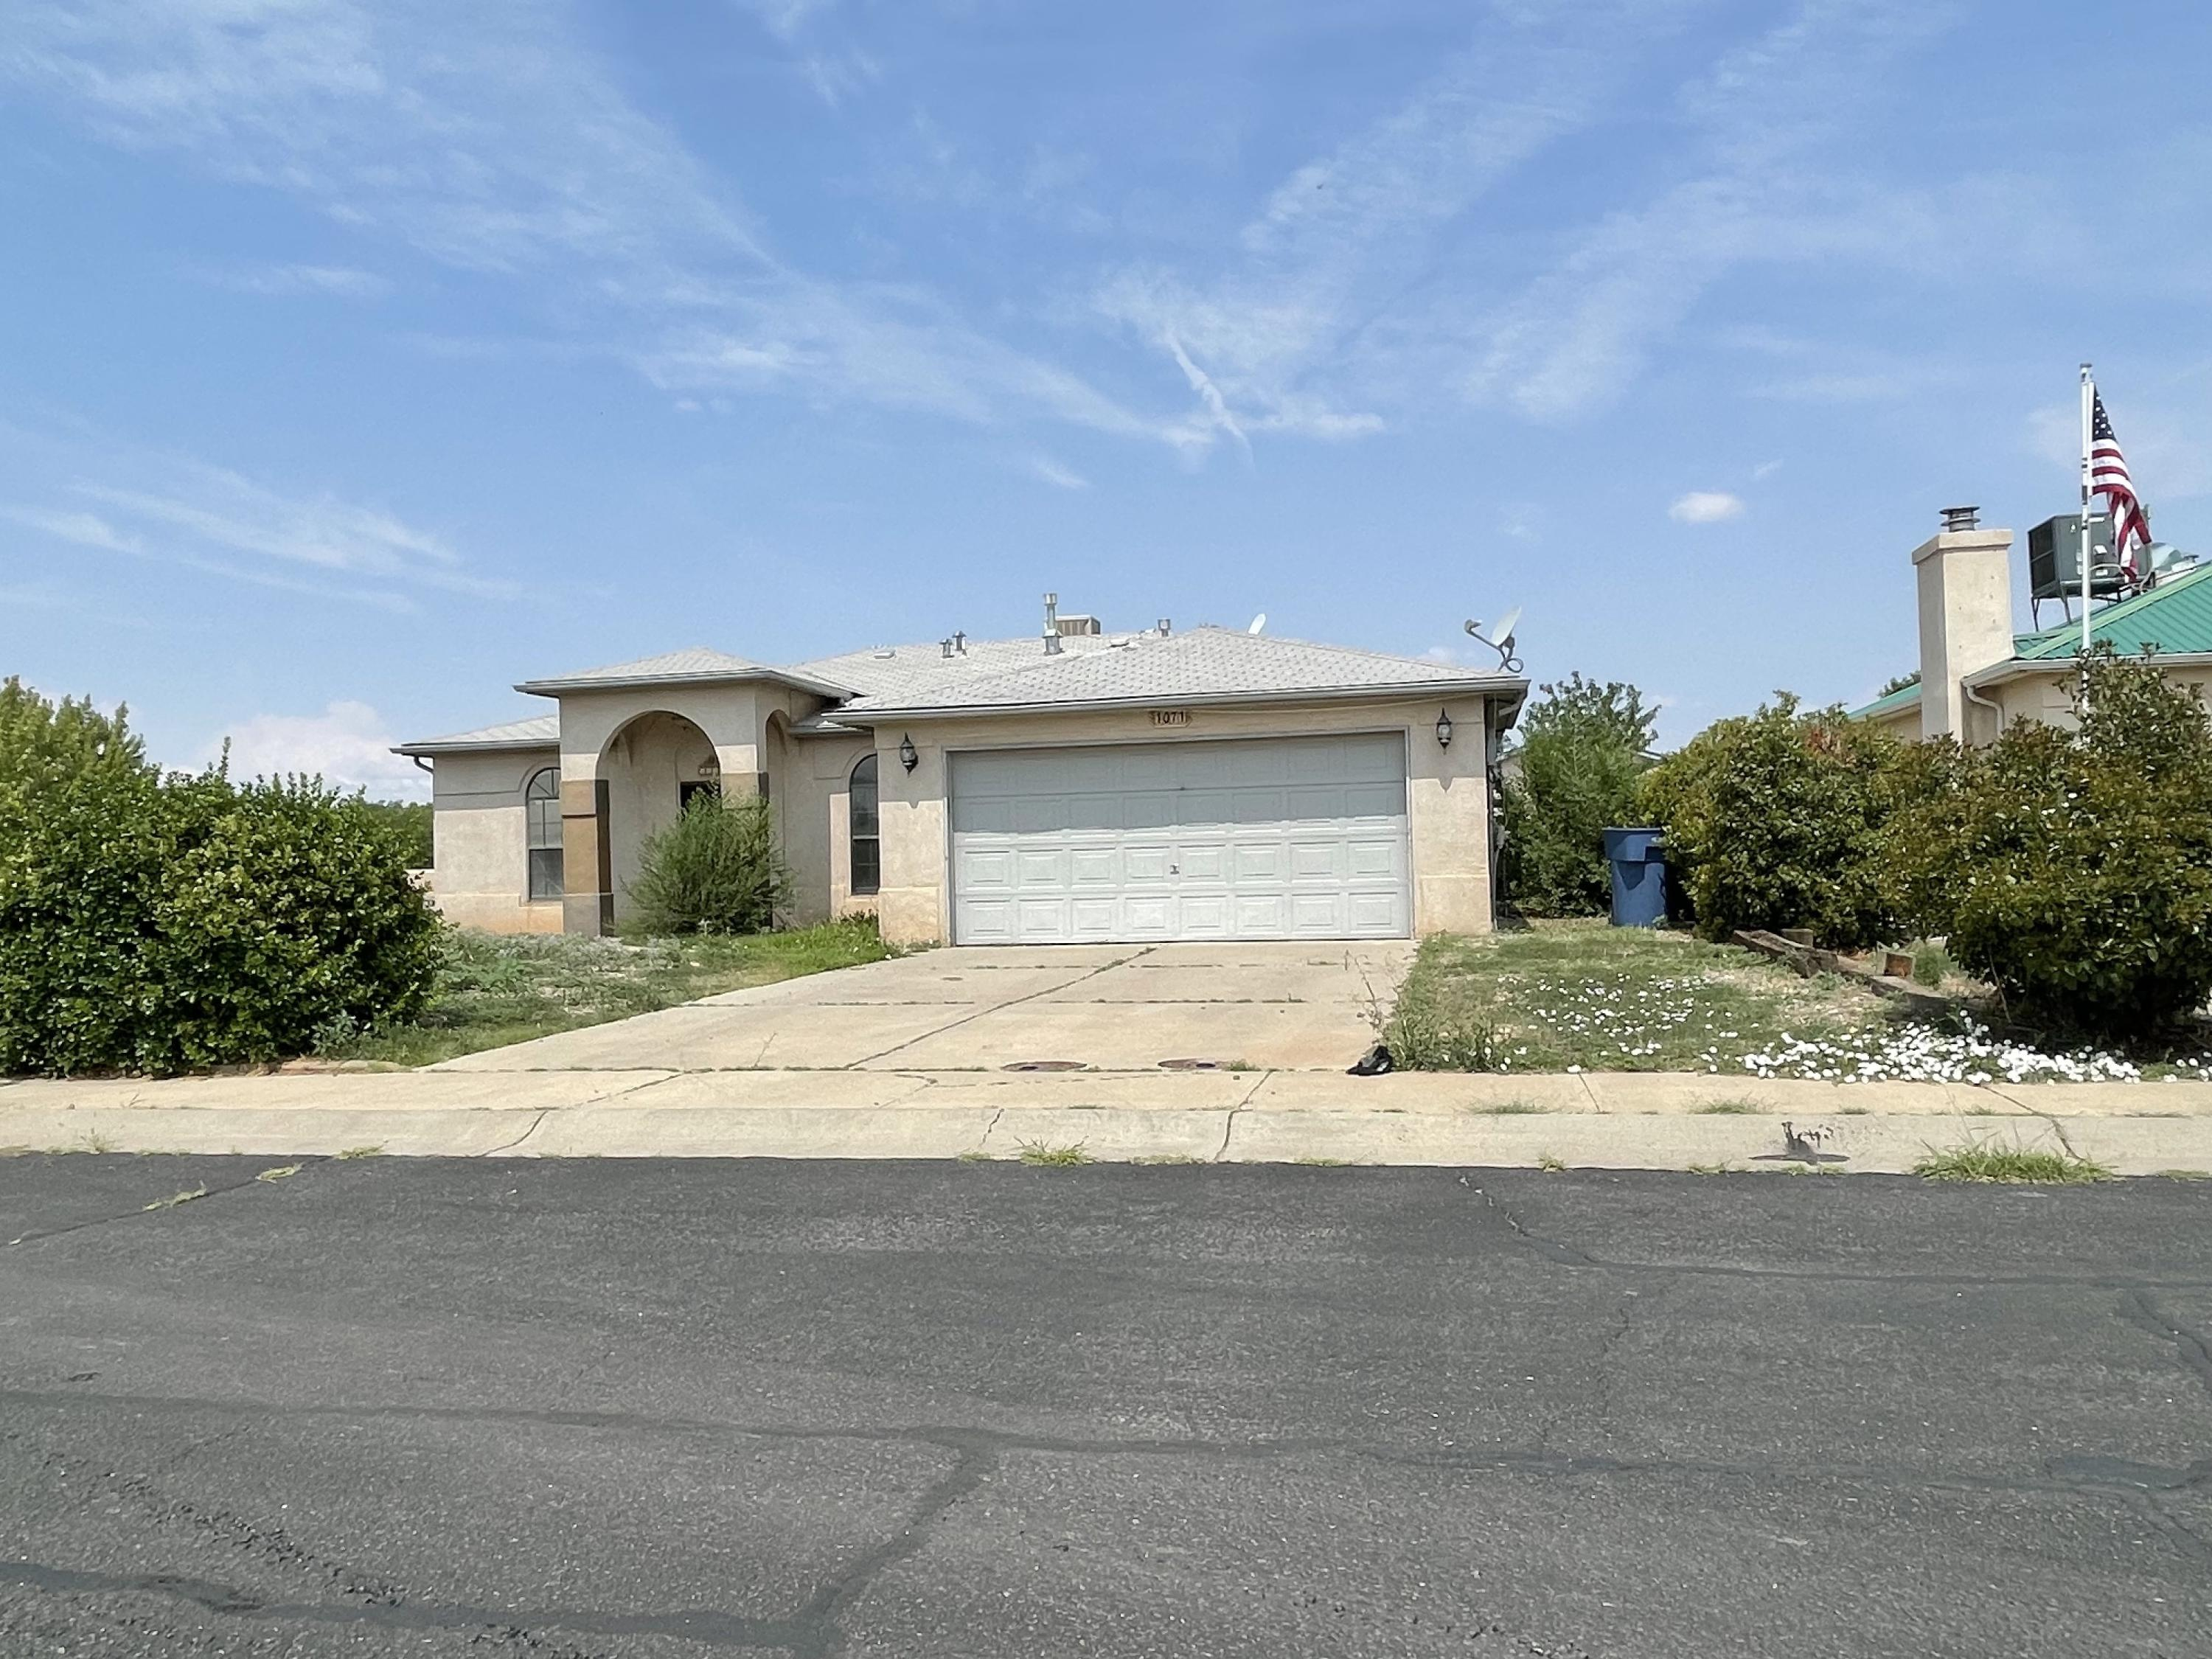 Great location in the heart of Los Lunas!!!  This nice size three bedroom, two bathroom home includes a nice size living room, an open dining room that leads to the backyard, a country kitchen with lots of cabinets, a breakfast bar, a free standing gas stove and dishwasher, the laundry service room is located just off the kitchen, and located on a nice corner lot with a large fenced in backyard.  Call today for details.